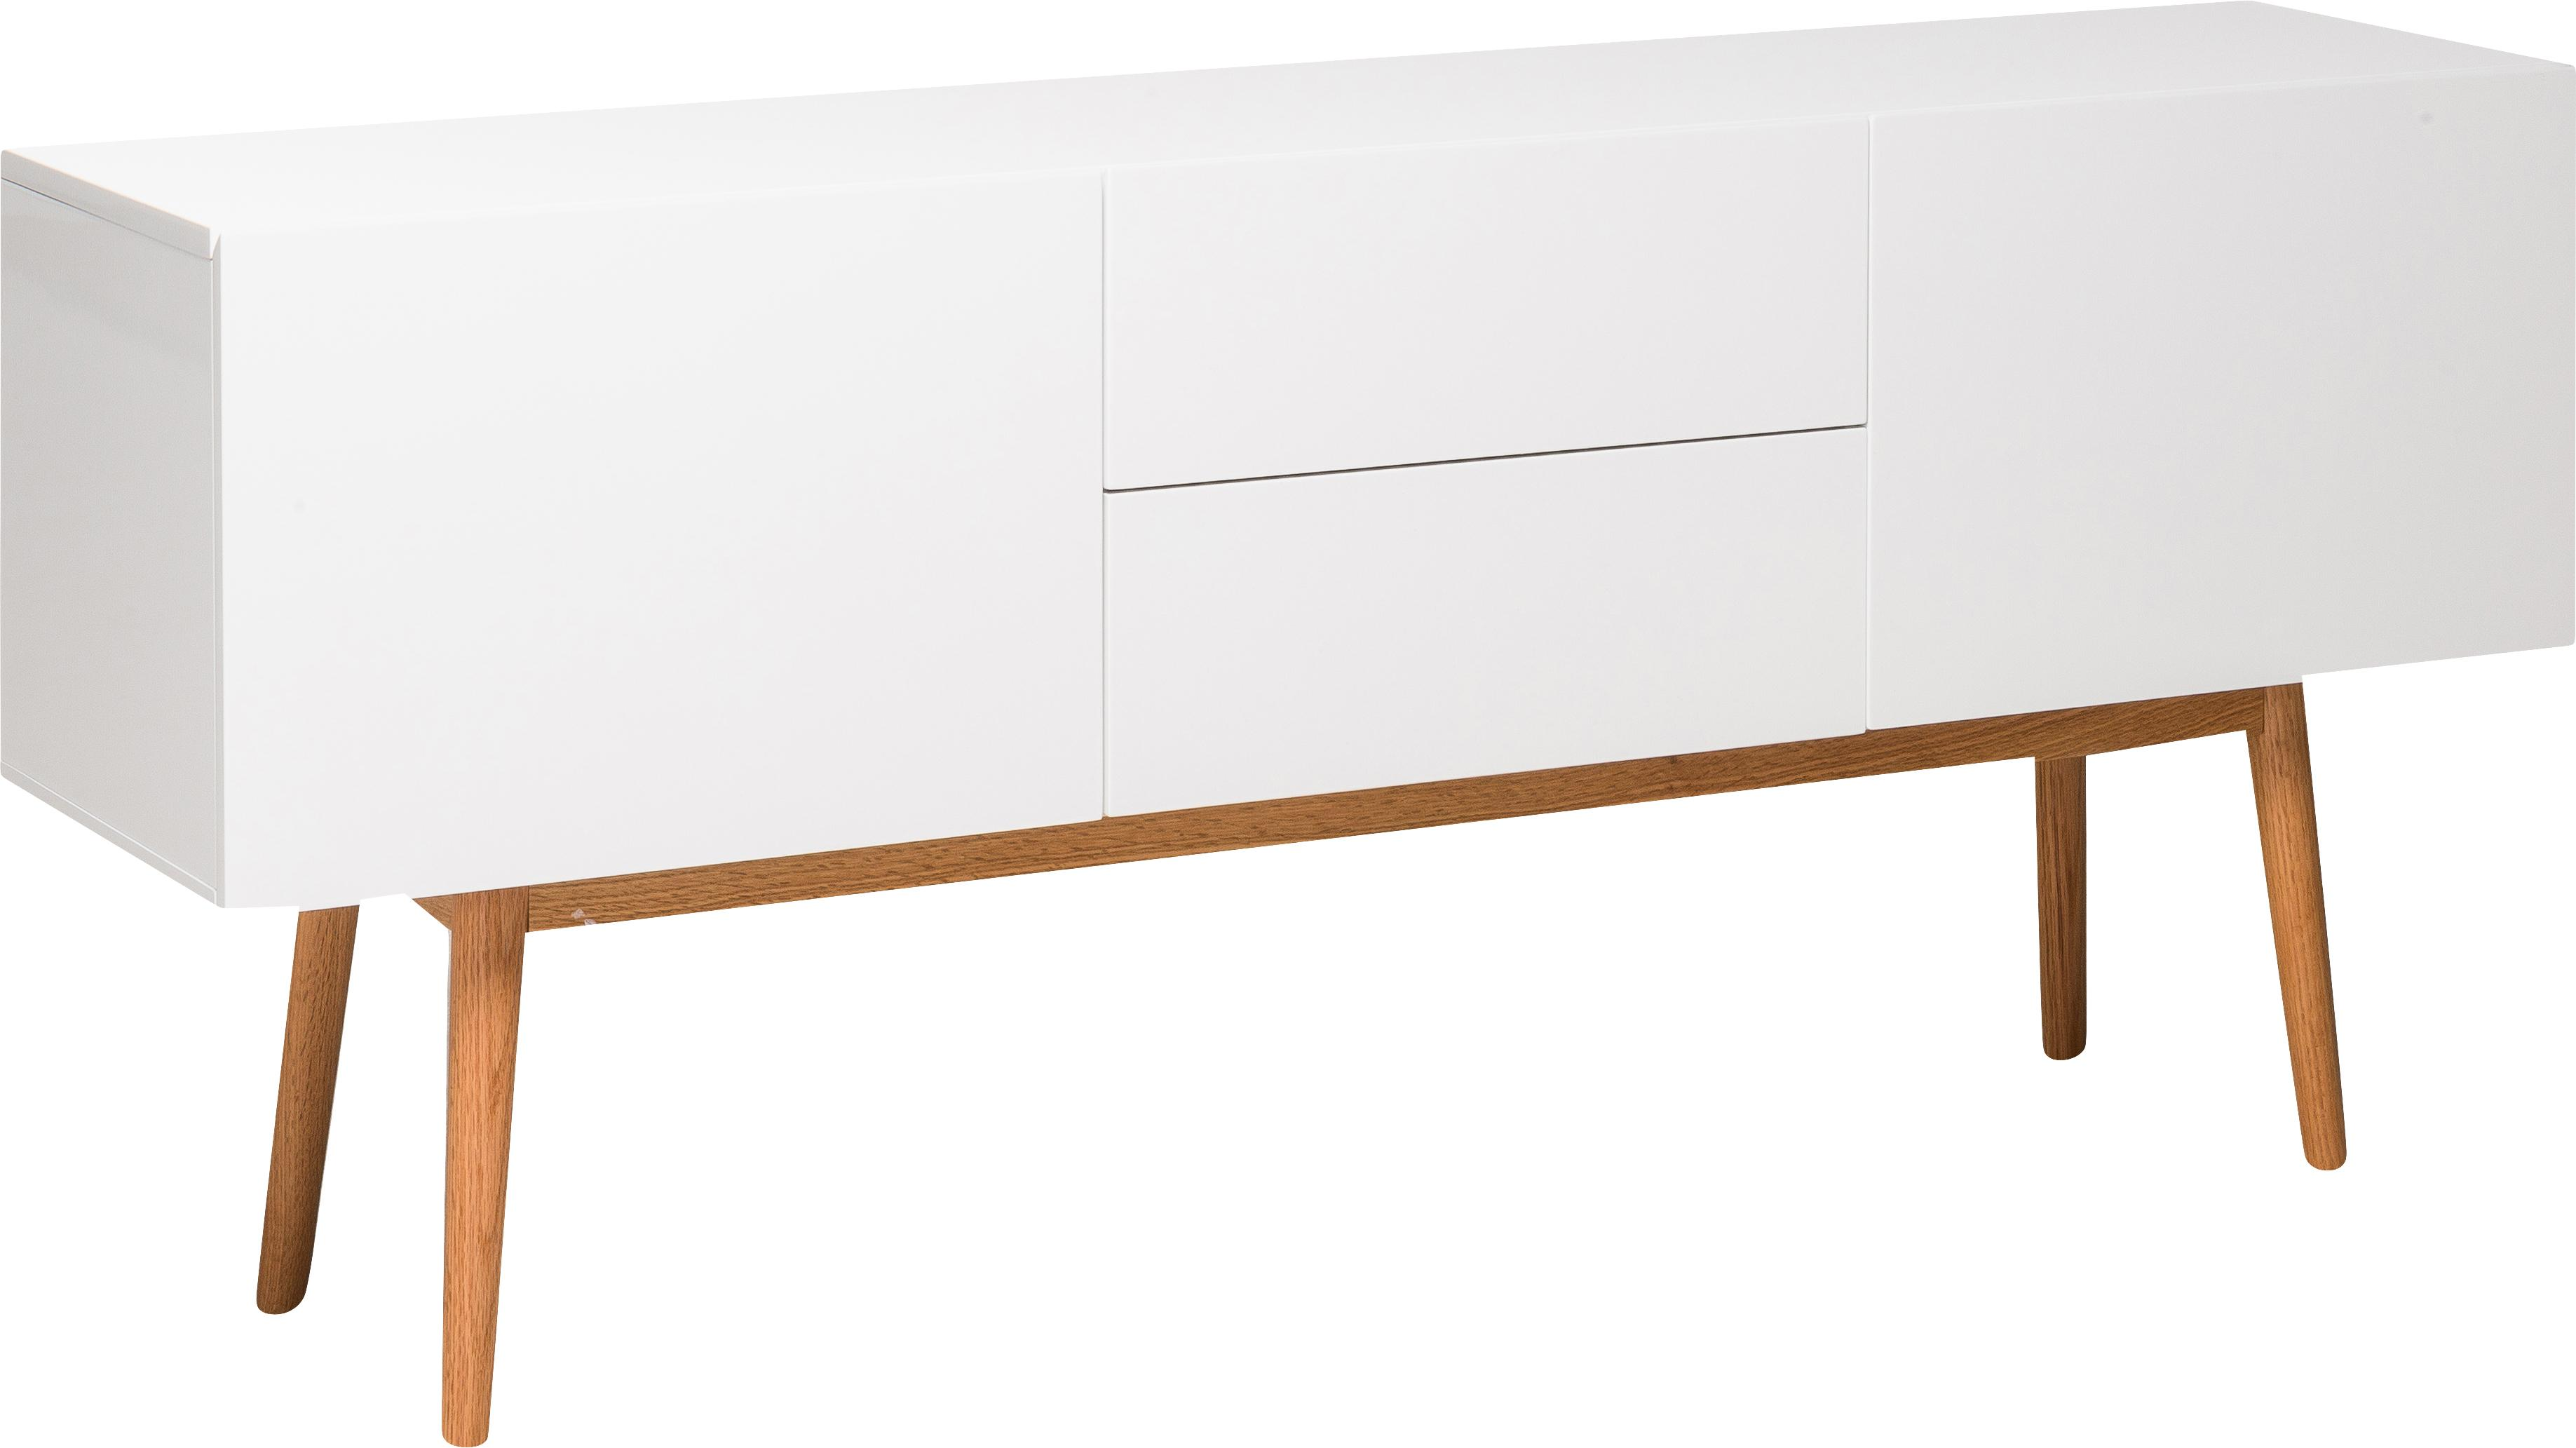 Dressoir High on Wood in wit hoogglans, Frame: PU gelakt MDF, Poten: massief eikenhout, Wit, 160 x 72 cm